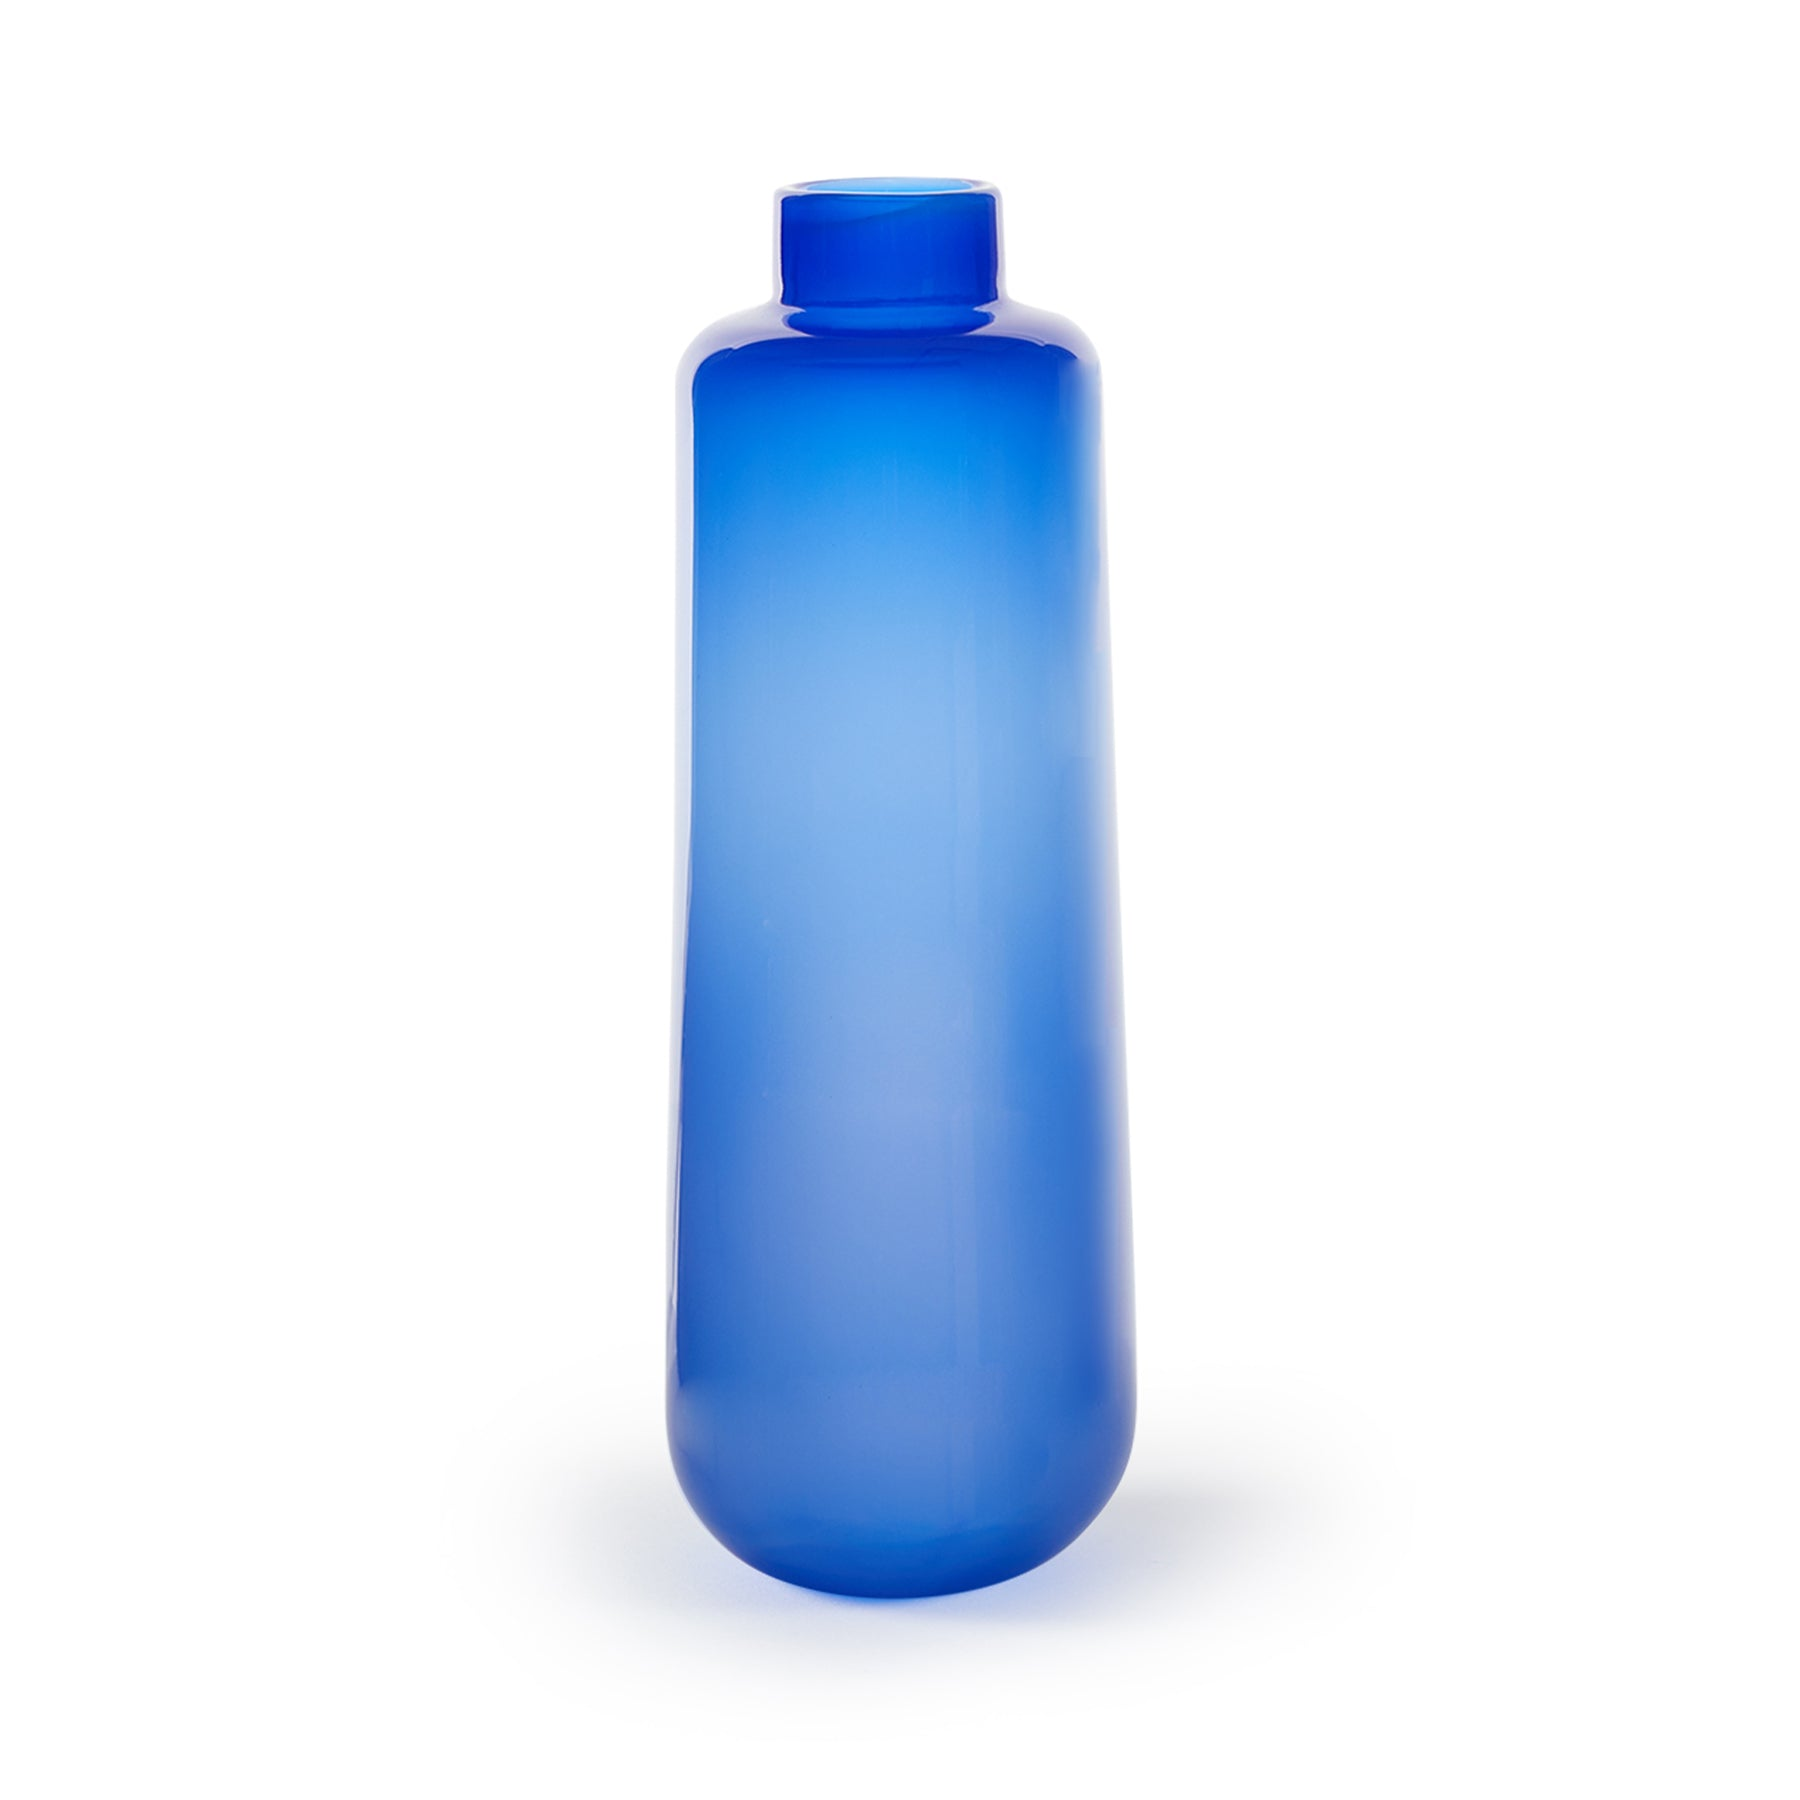 Tall Vase in Royal Blue Zoom Image 1